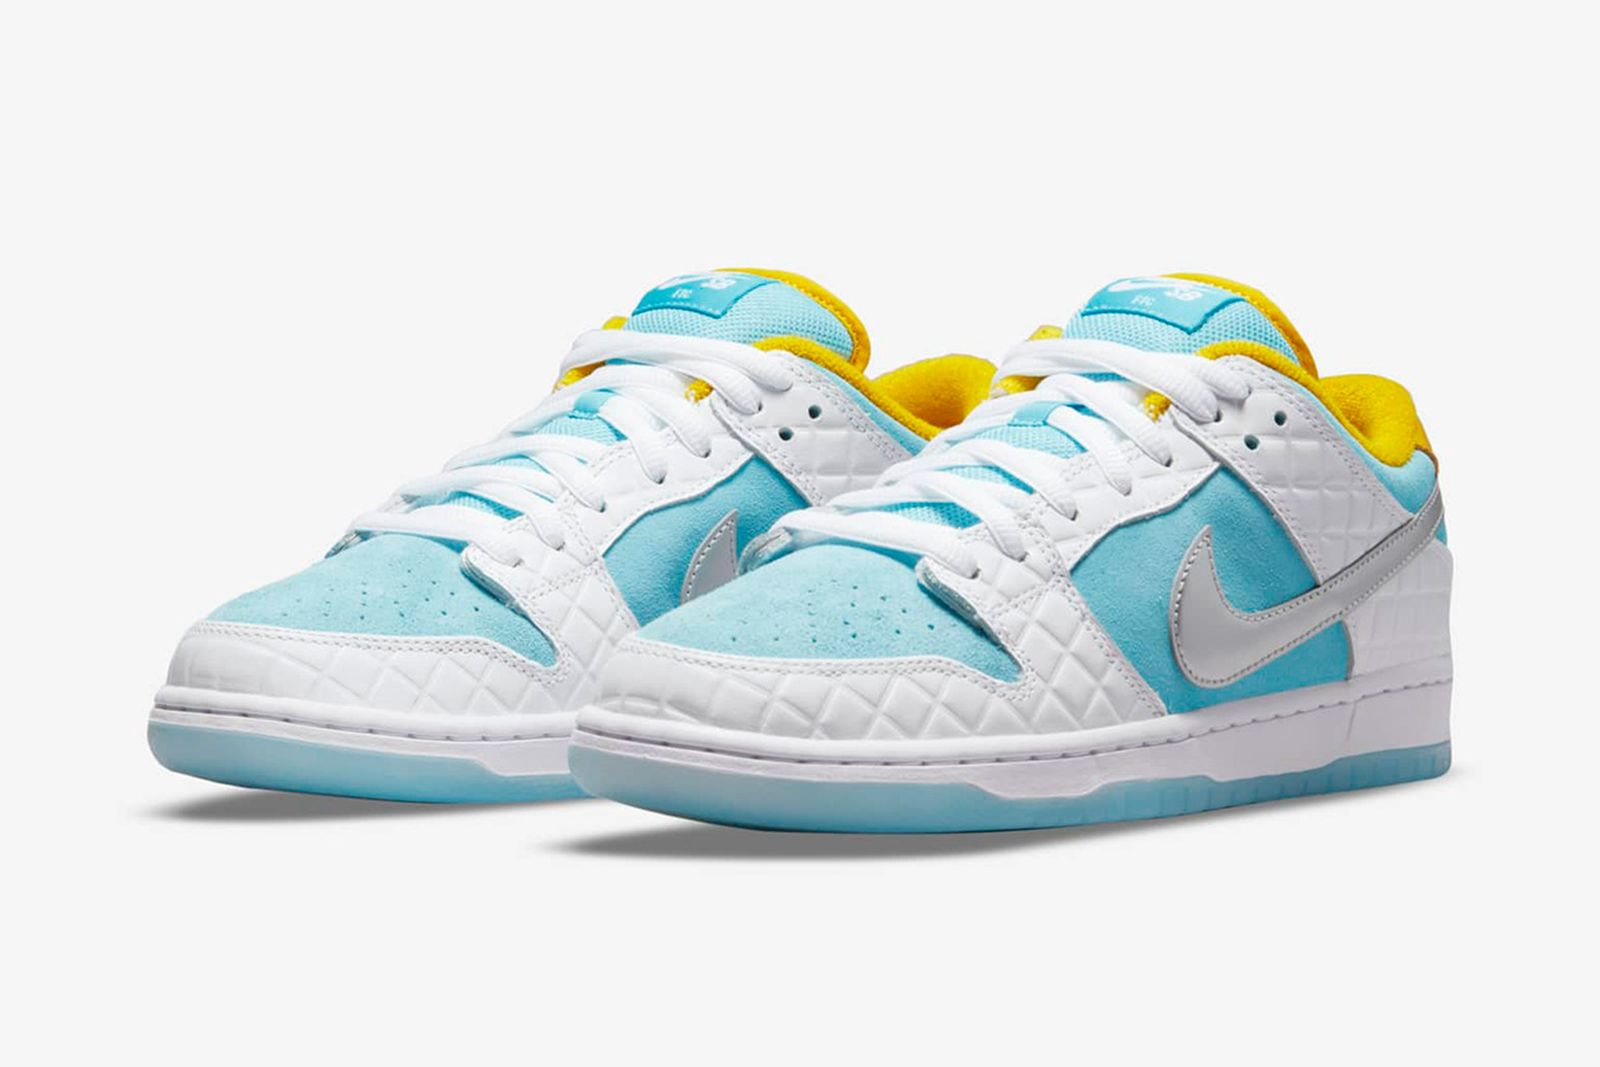 ftc-nike-sb-dunk-low-olympics-release-date-price-01